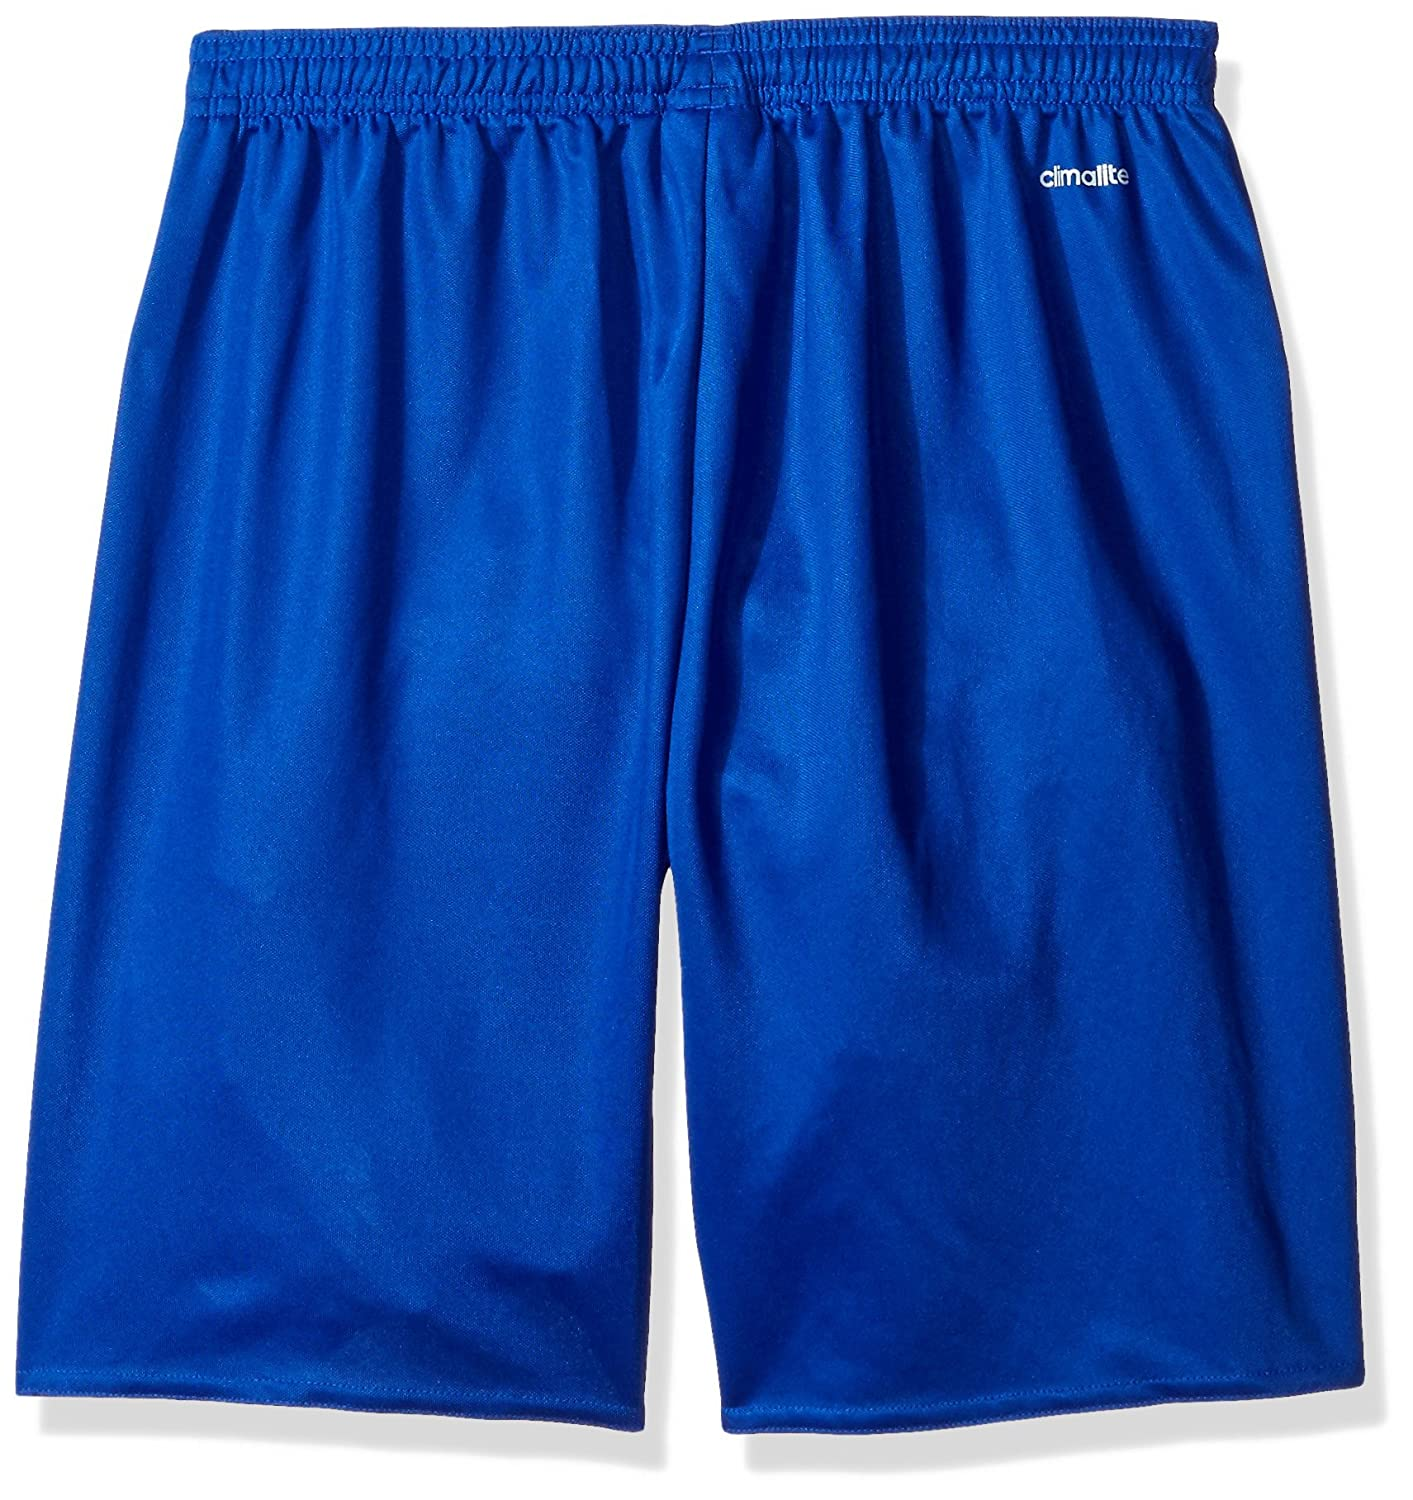 Amazon.com : adidas Youth Squad 13 Shorts : Sports & Outdoors